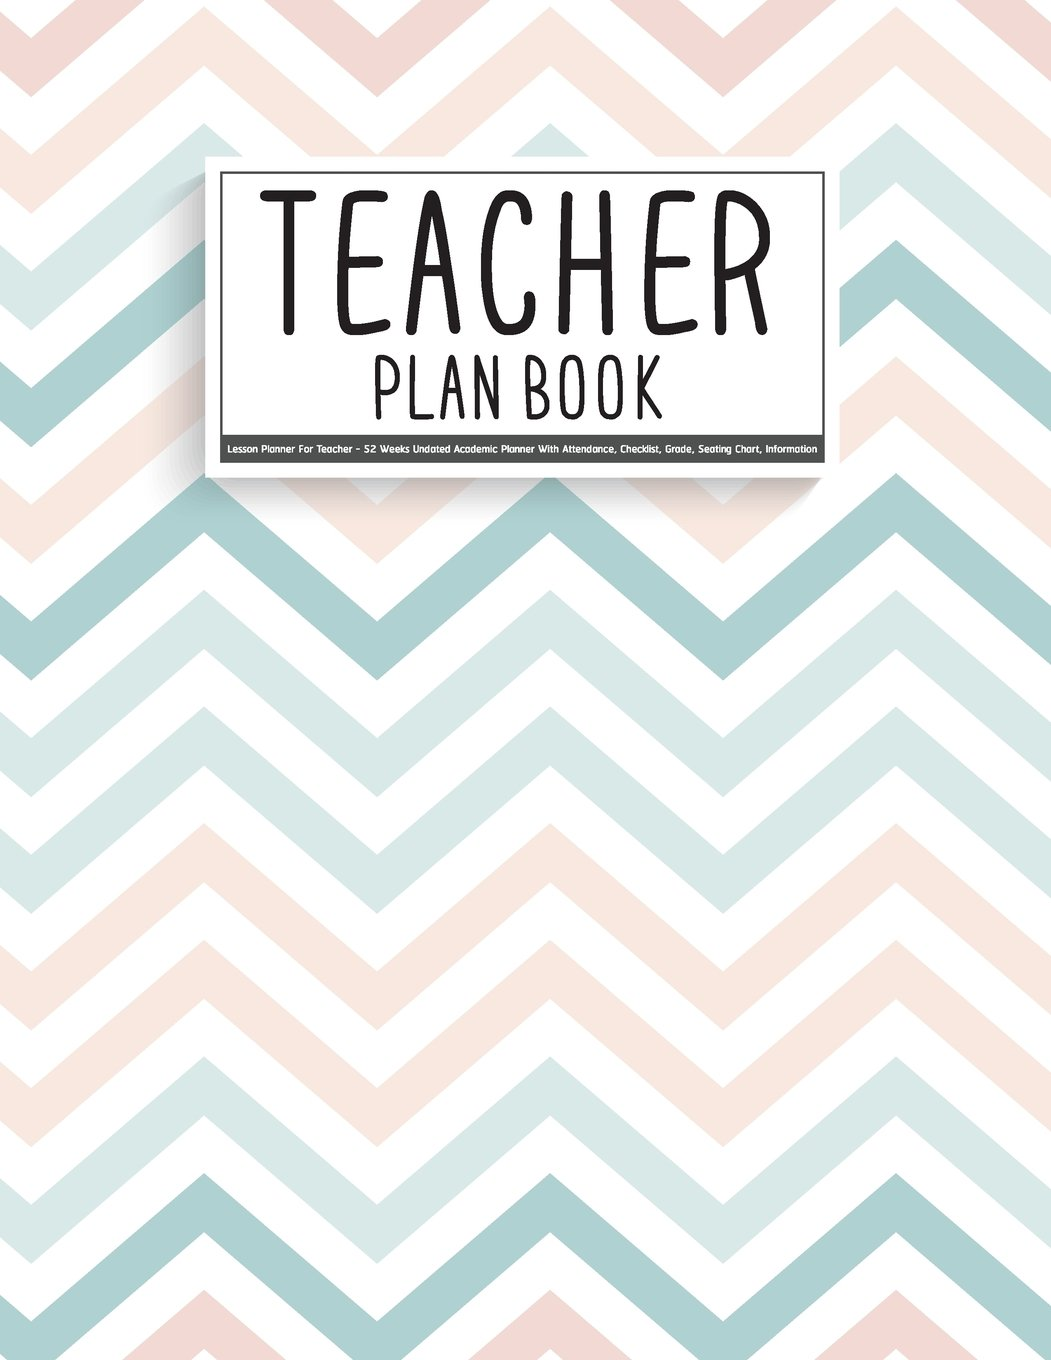 teacher plan book lesson planner for teacher 52 weeks undated